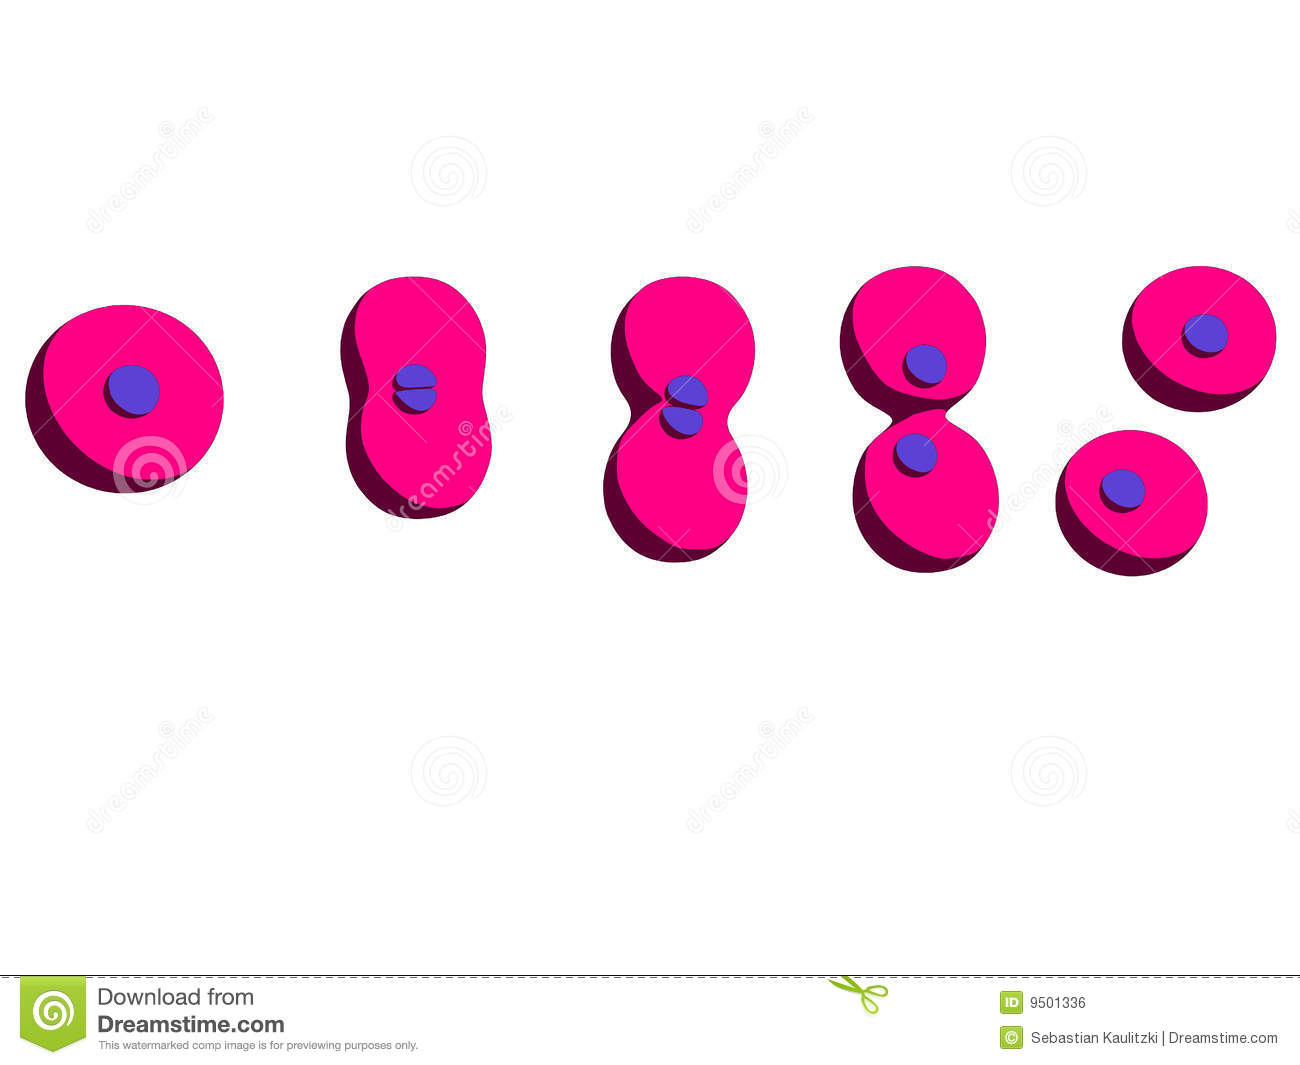 Cell Division Royalty Free Stock Image - Image: 9501336